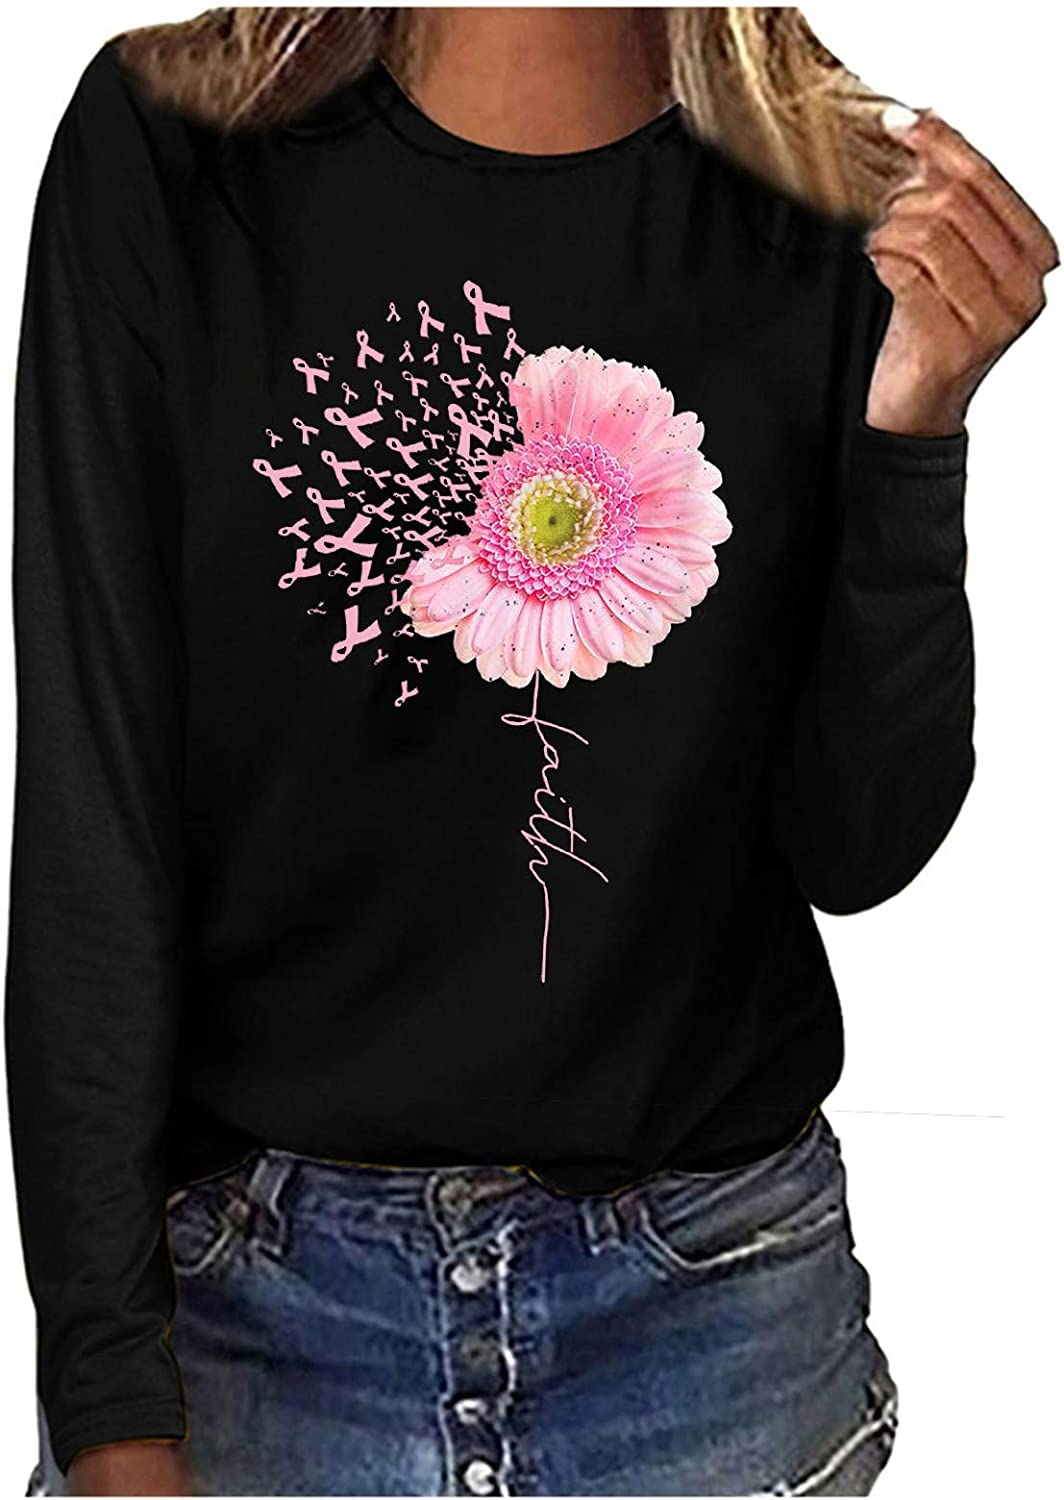 Womens Plus Size Tops Floral Print Solid Color Tee Shirts Crew Neck Sweatshirt Blouse Long-Sleeve Tunic